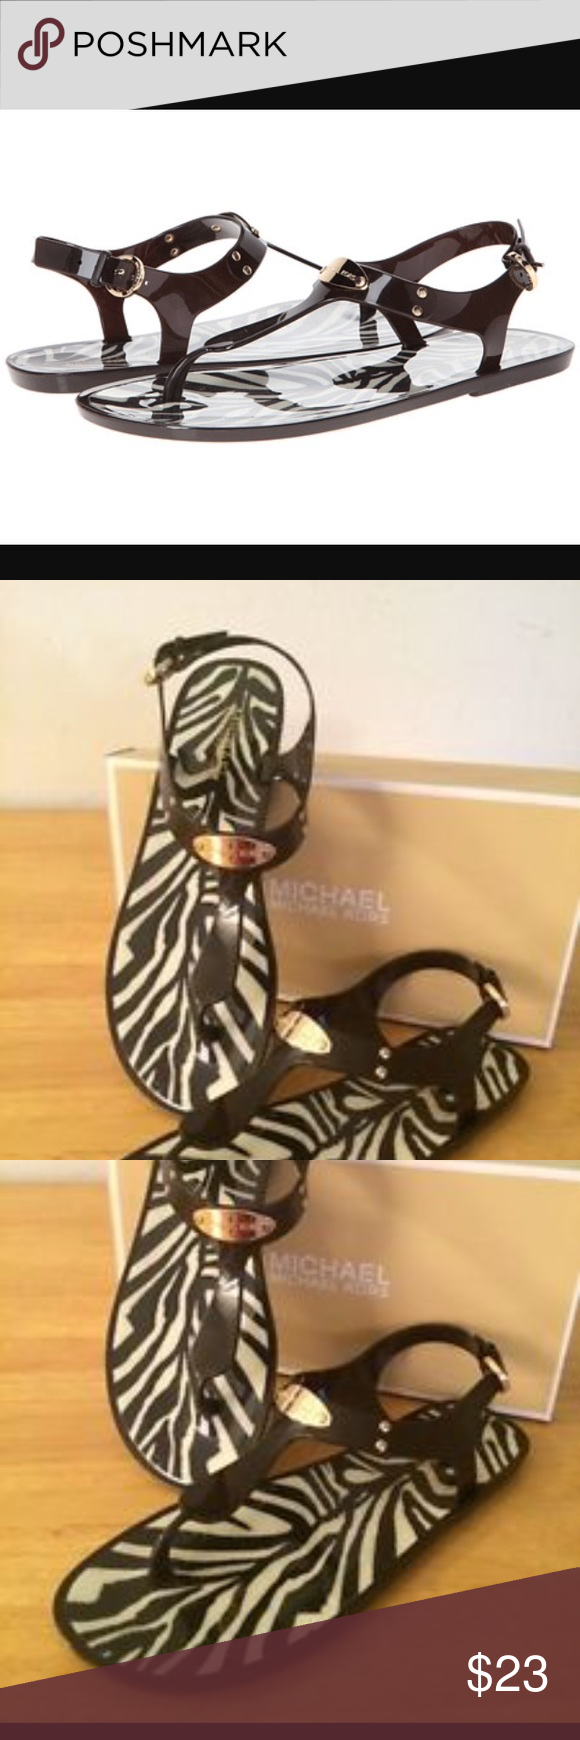 Michael Kors Brown Jelly Sandals Gold Tone Plate Sandals. In very good condition. A few scratches on the plate of the right shoe. Other than that, shoes were well taken care of. Wore them twice. I'm just not a big fan of having anything between my toes. Michael Kors Shoes Sandals